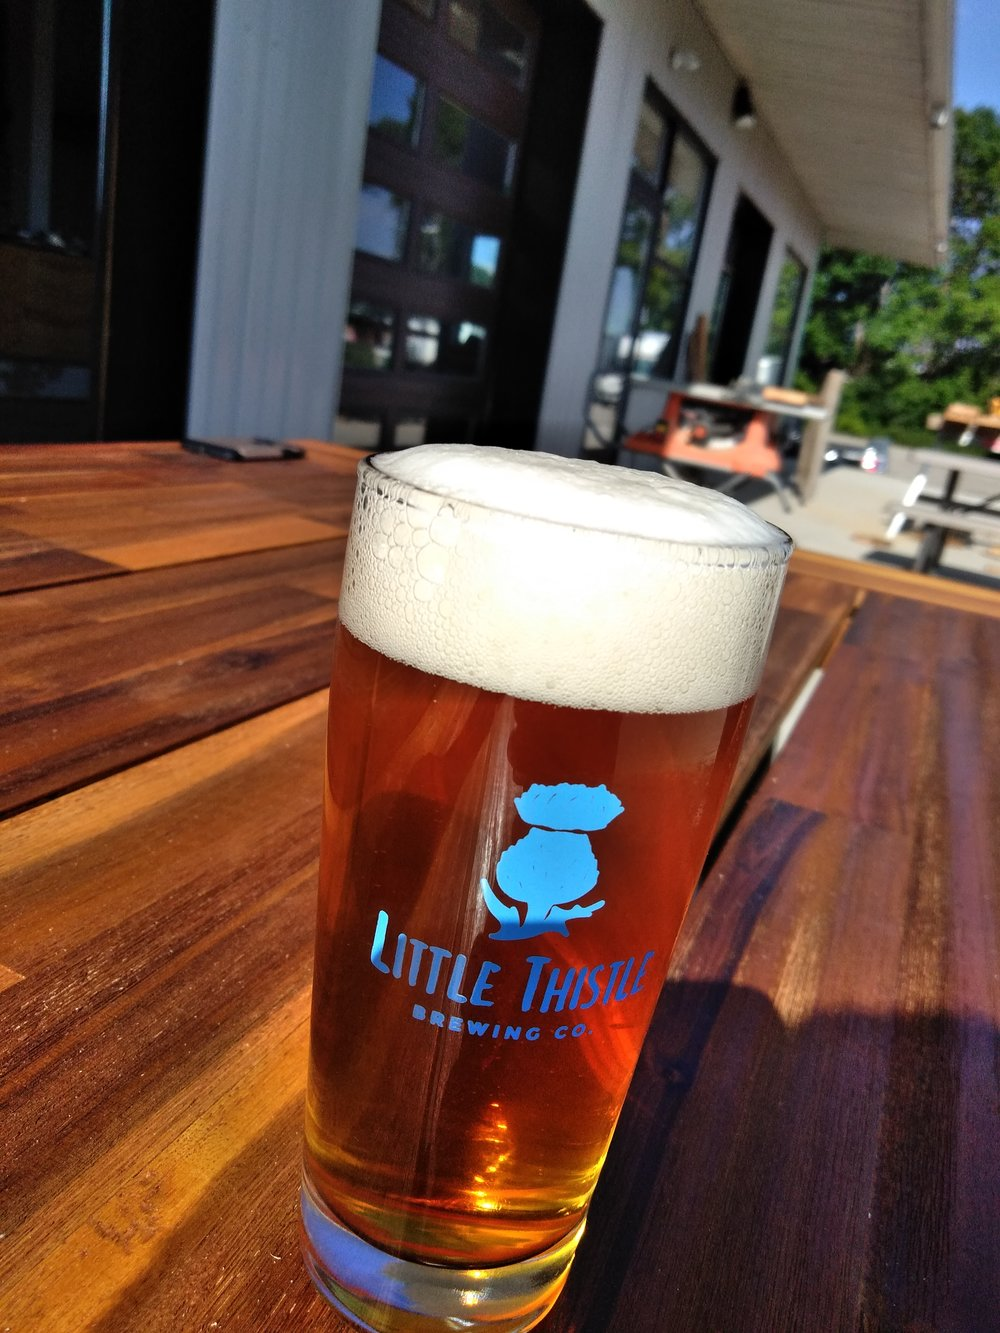 Little Thistle Brewing is located at 2031 14th Street NW in Rochester